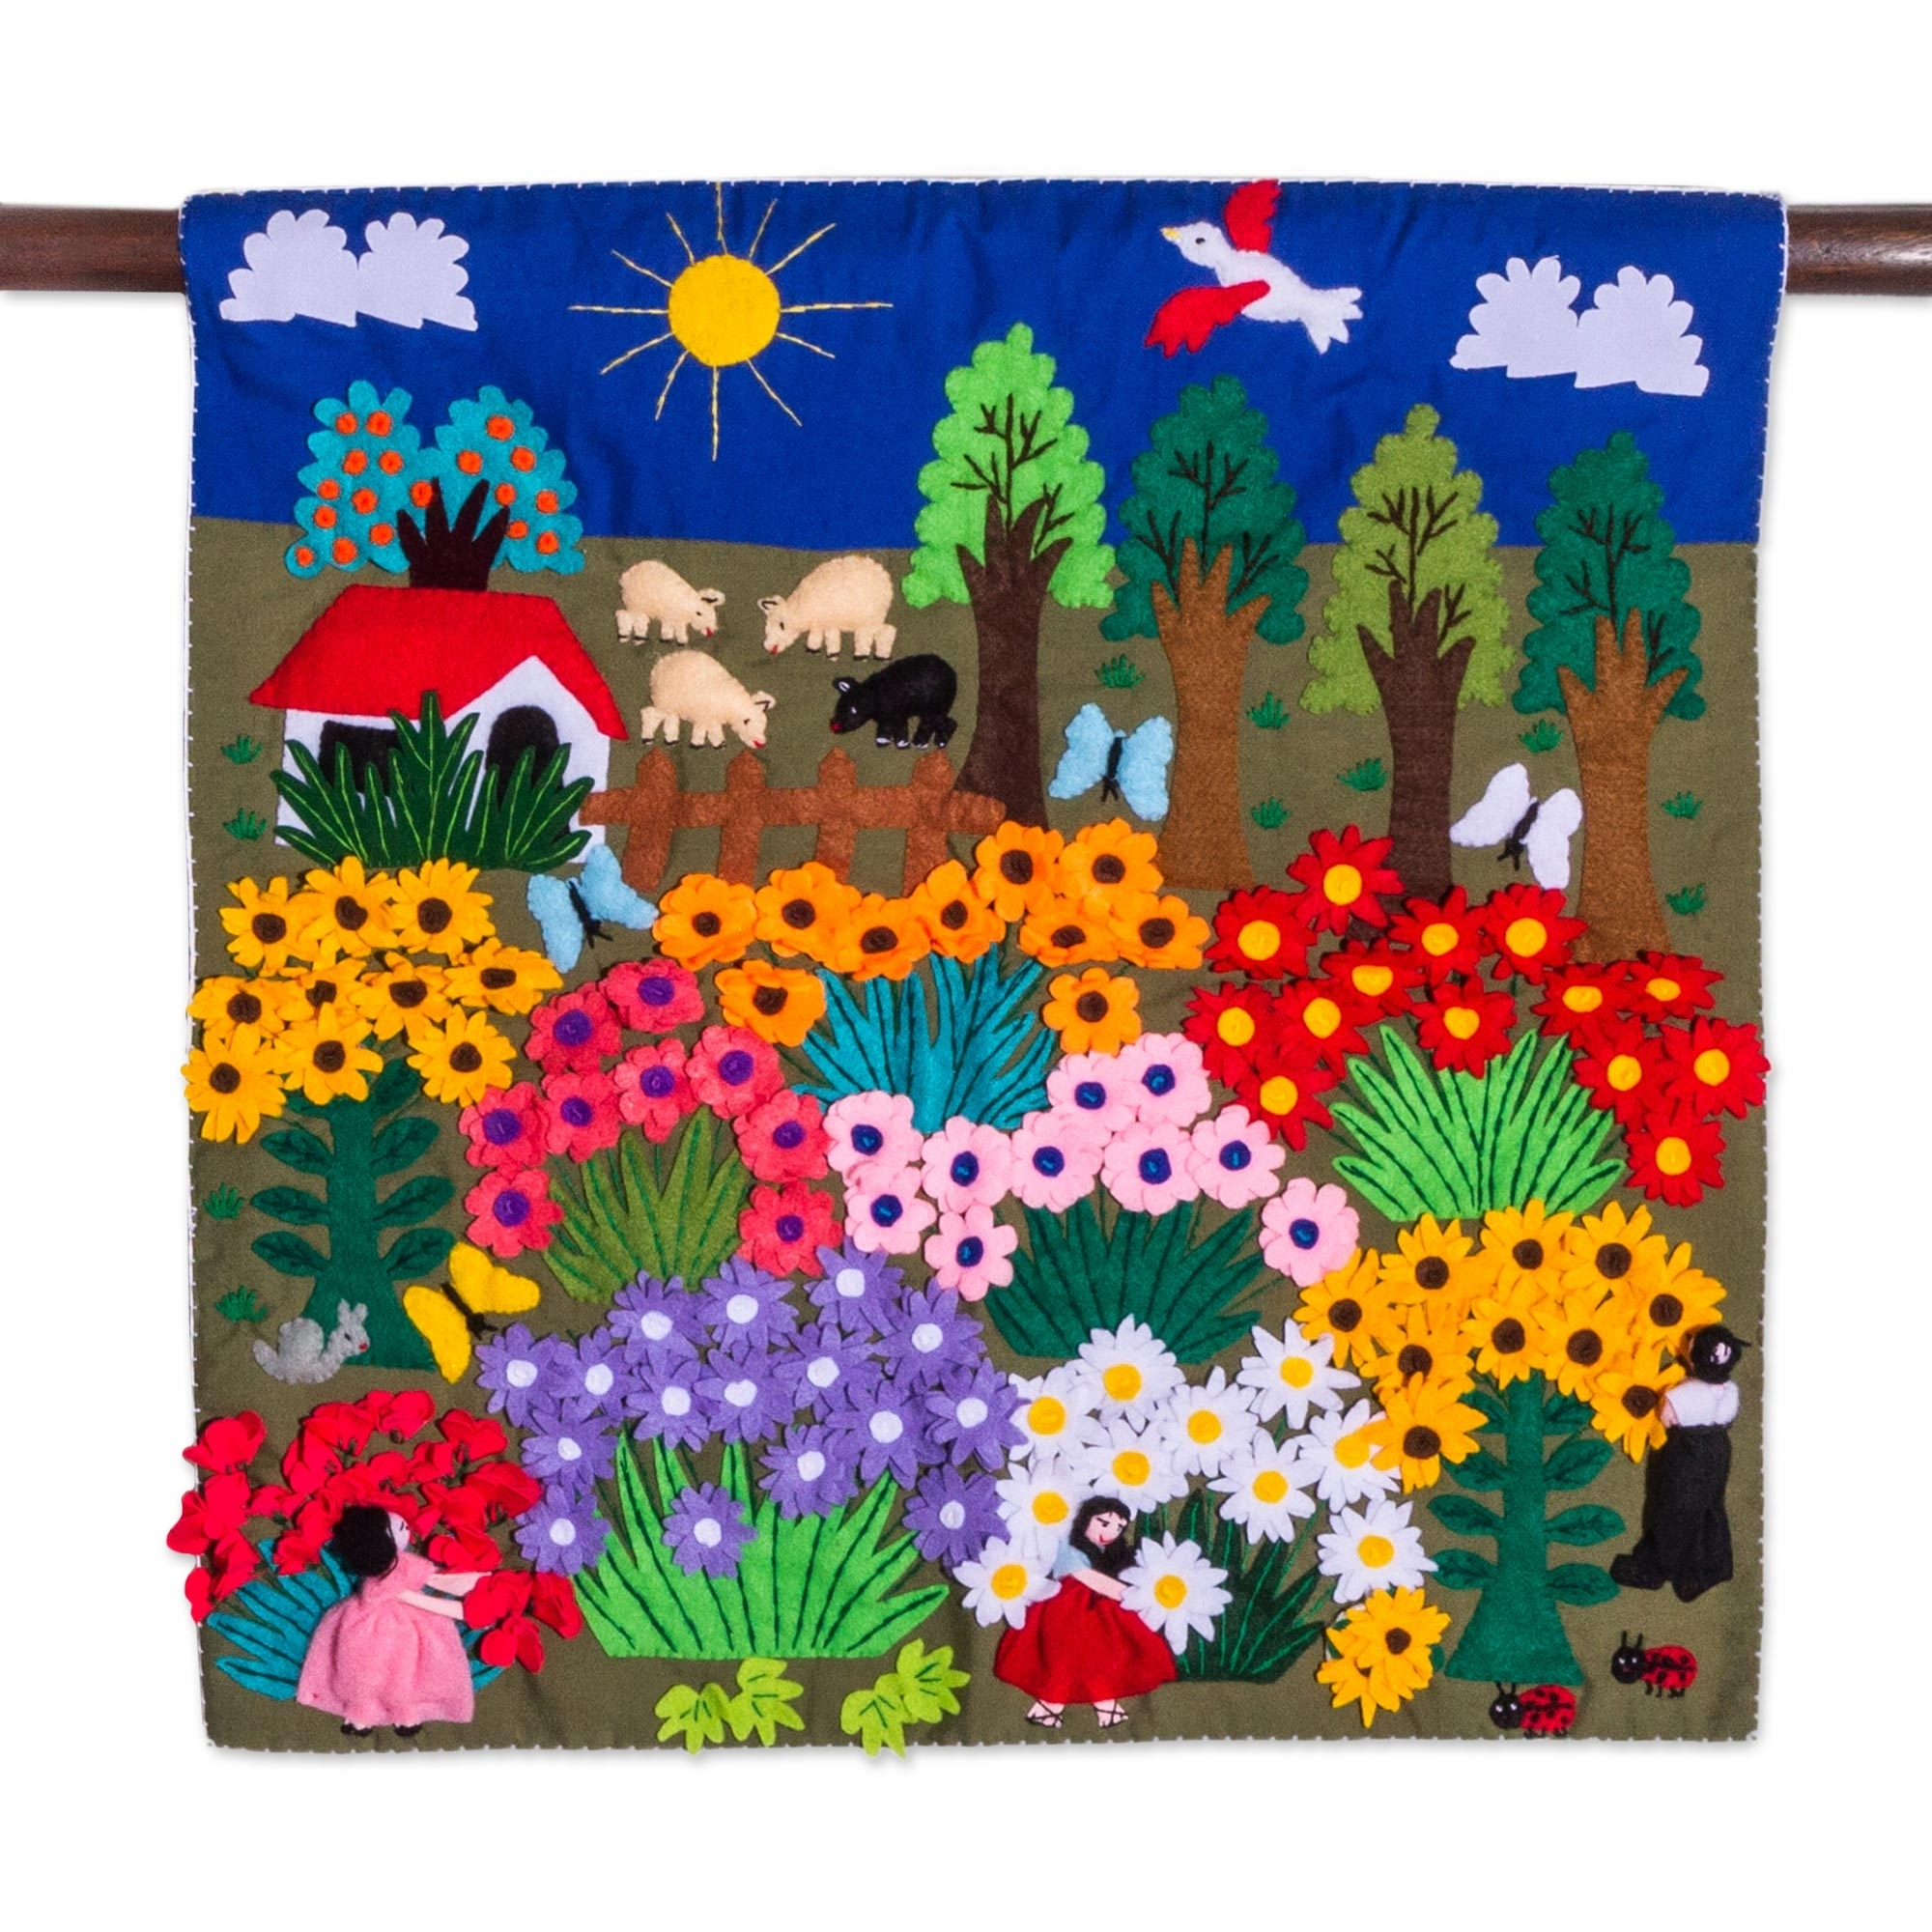 Wall Hangings Offer A Great Variety Of Decor Options For Recent Fabric Applique Wall Art (View 5 of 15)